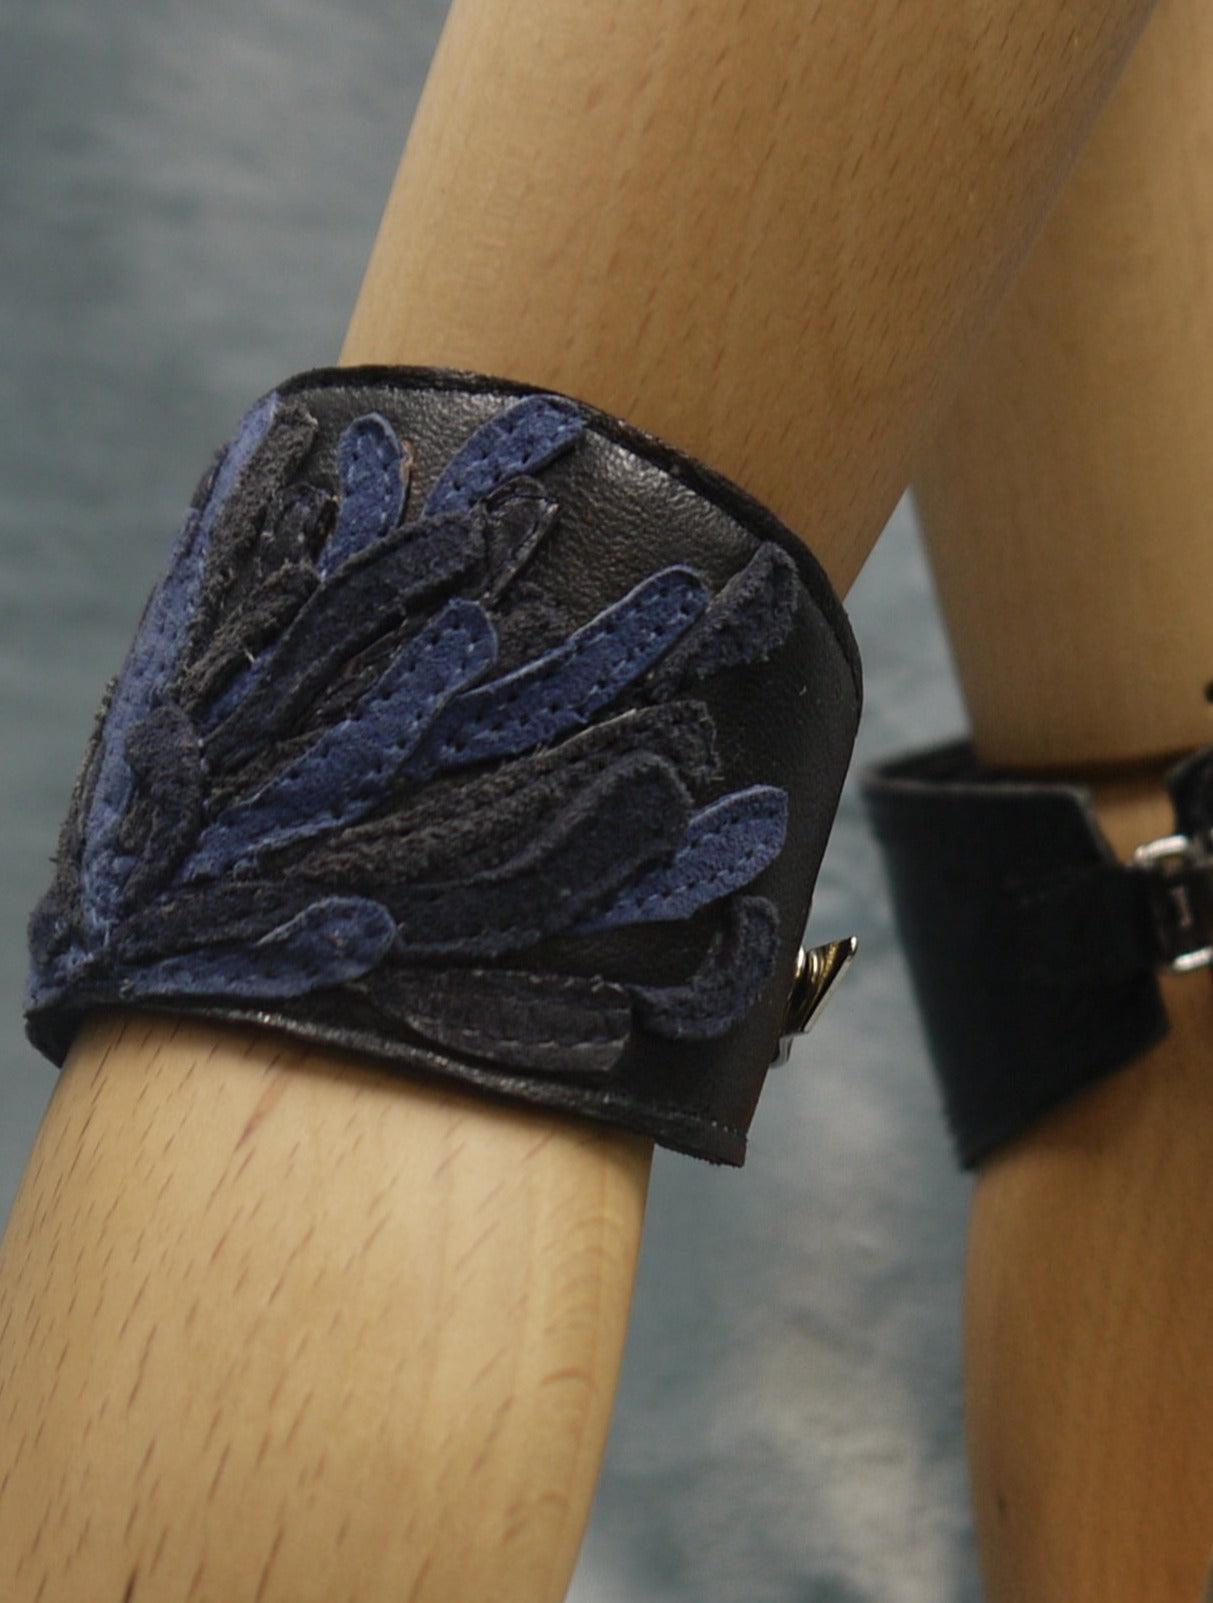 Chysanthemum Leather Cuff in black with dark blue and royal blue,hand cut petals, one-of-a- kind, unique, made in Italy by designer-makers